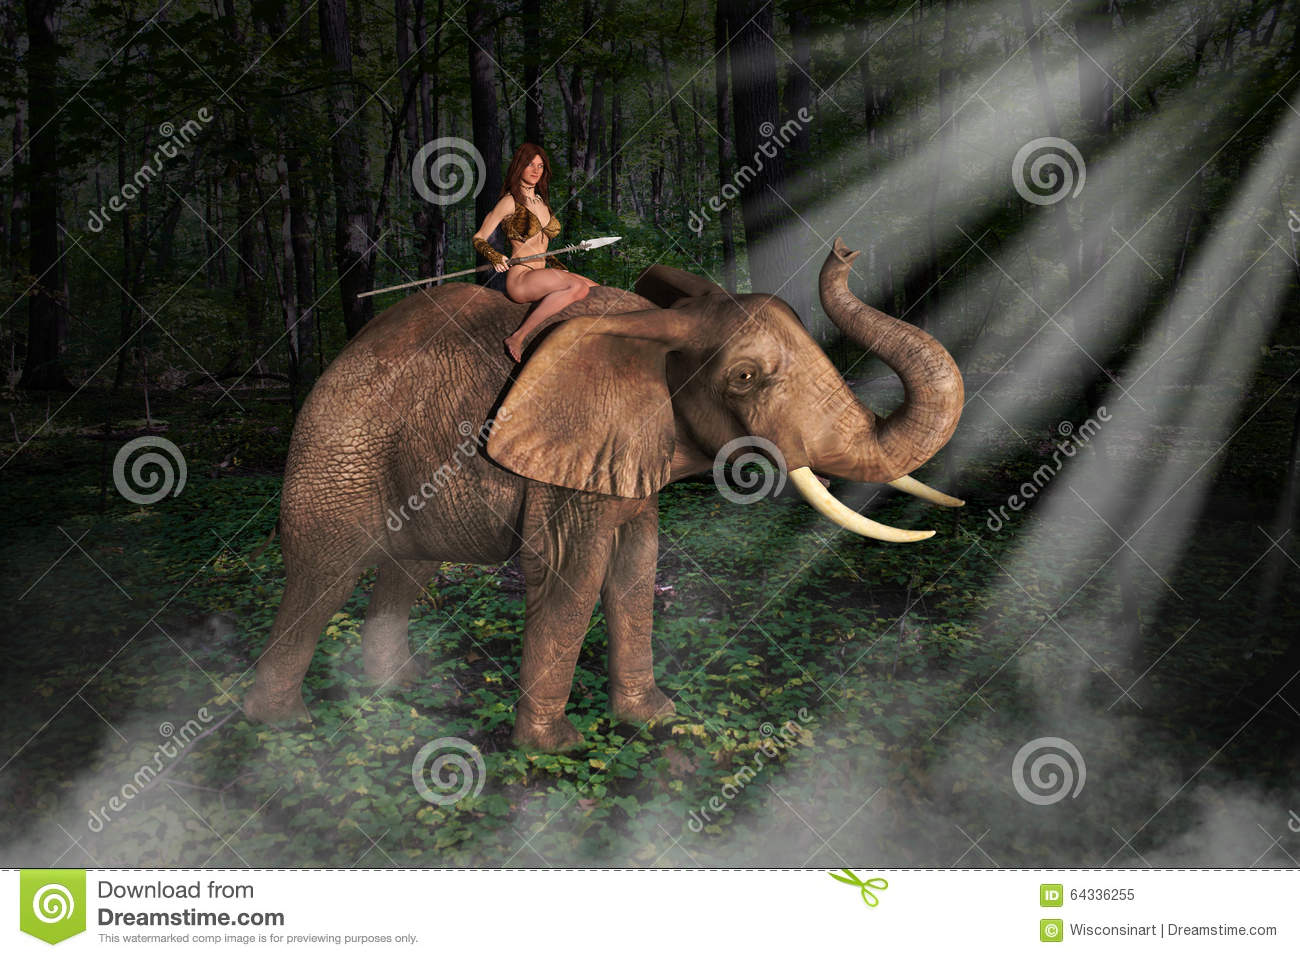 Tarzan or Amazon like jungle girl is riding an elephant. They are in ...